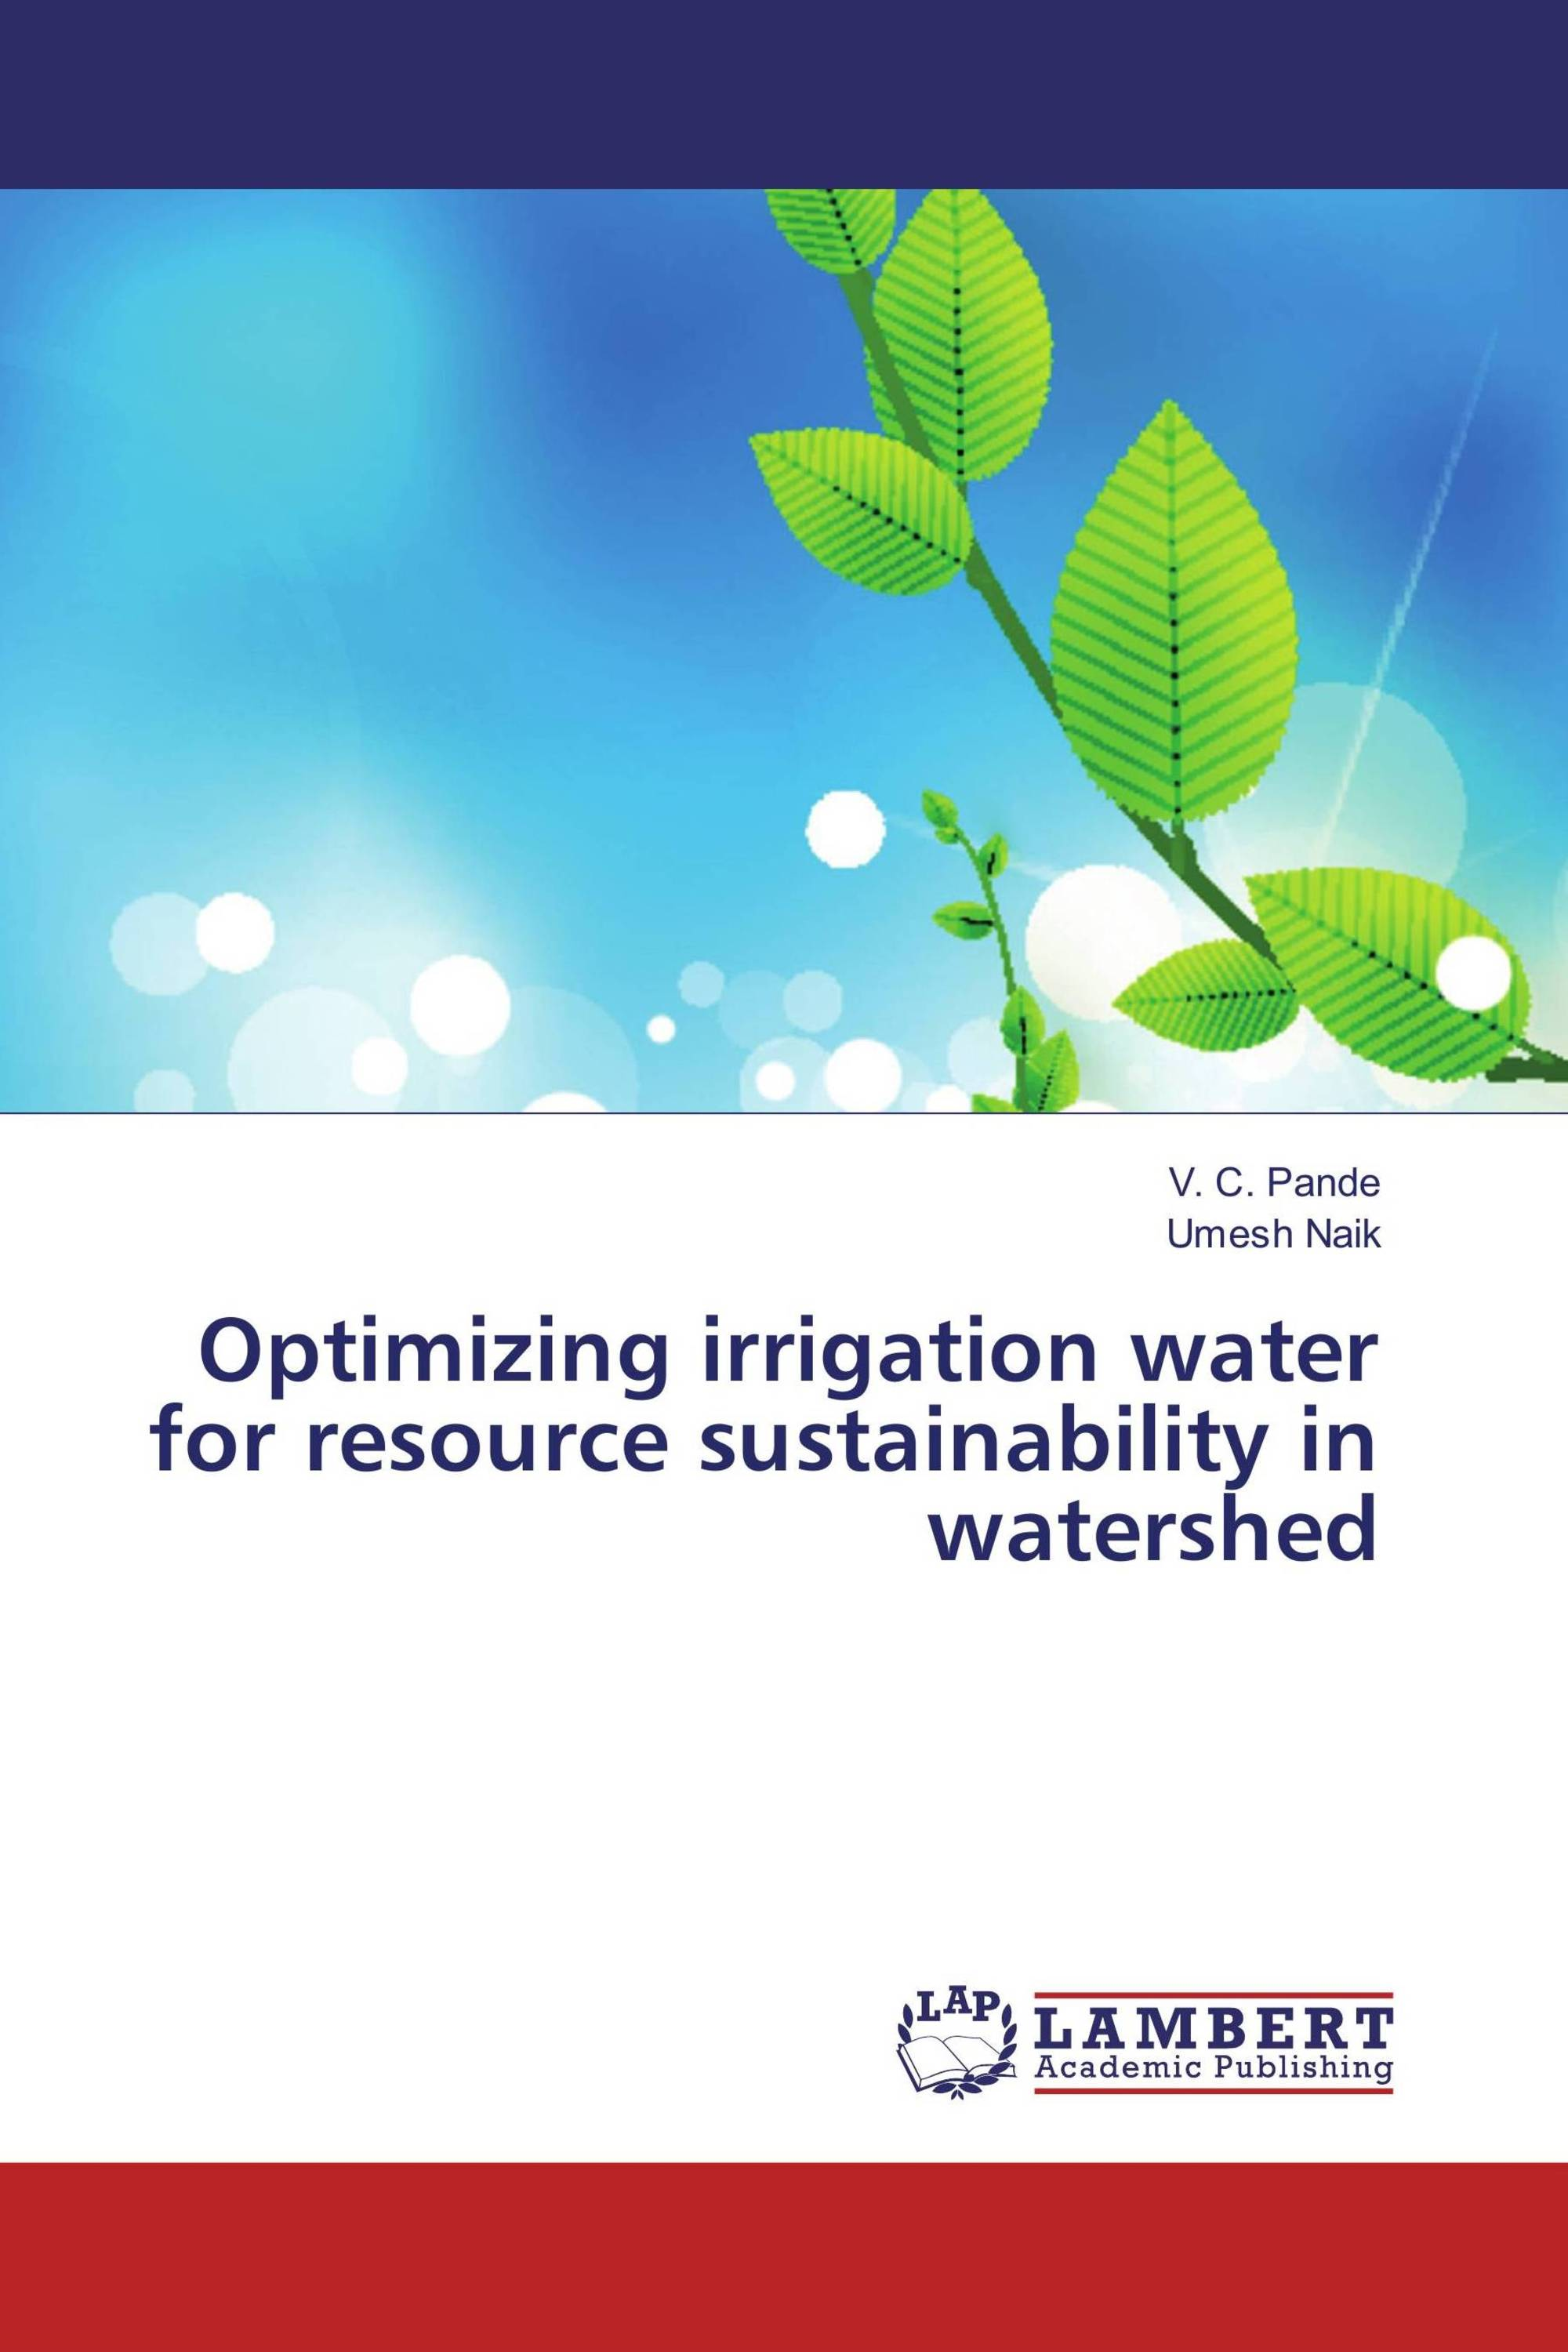 Optimizing irrigation water for resource sustainability in watershed